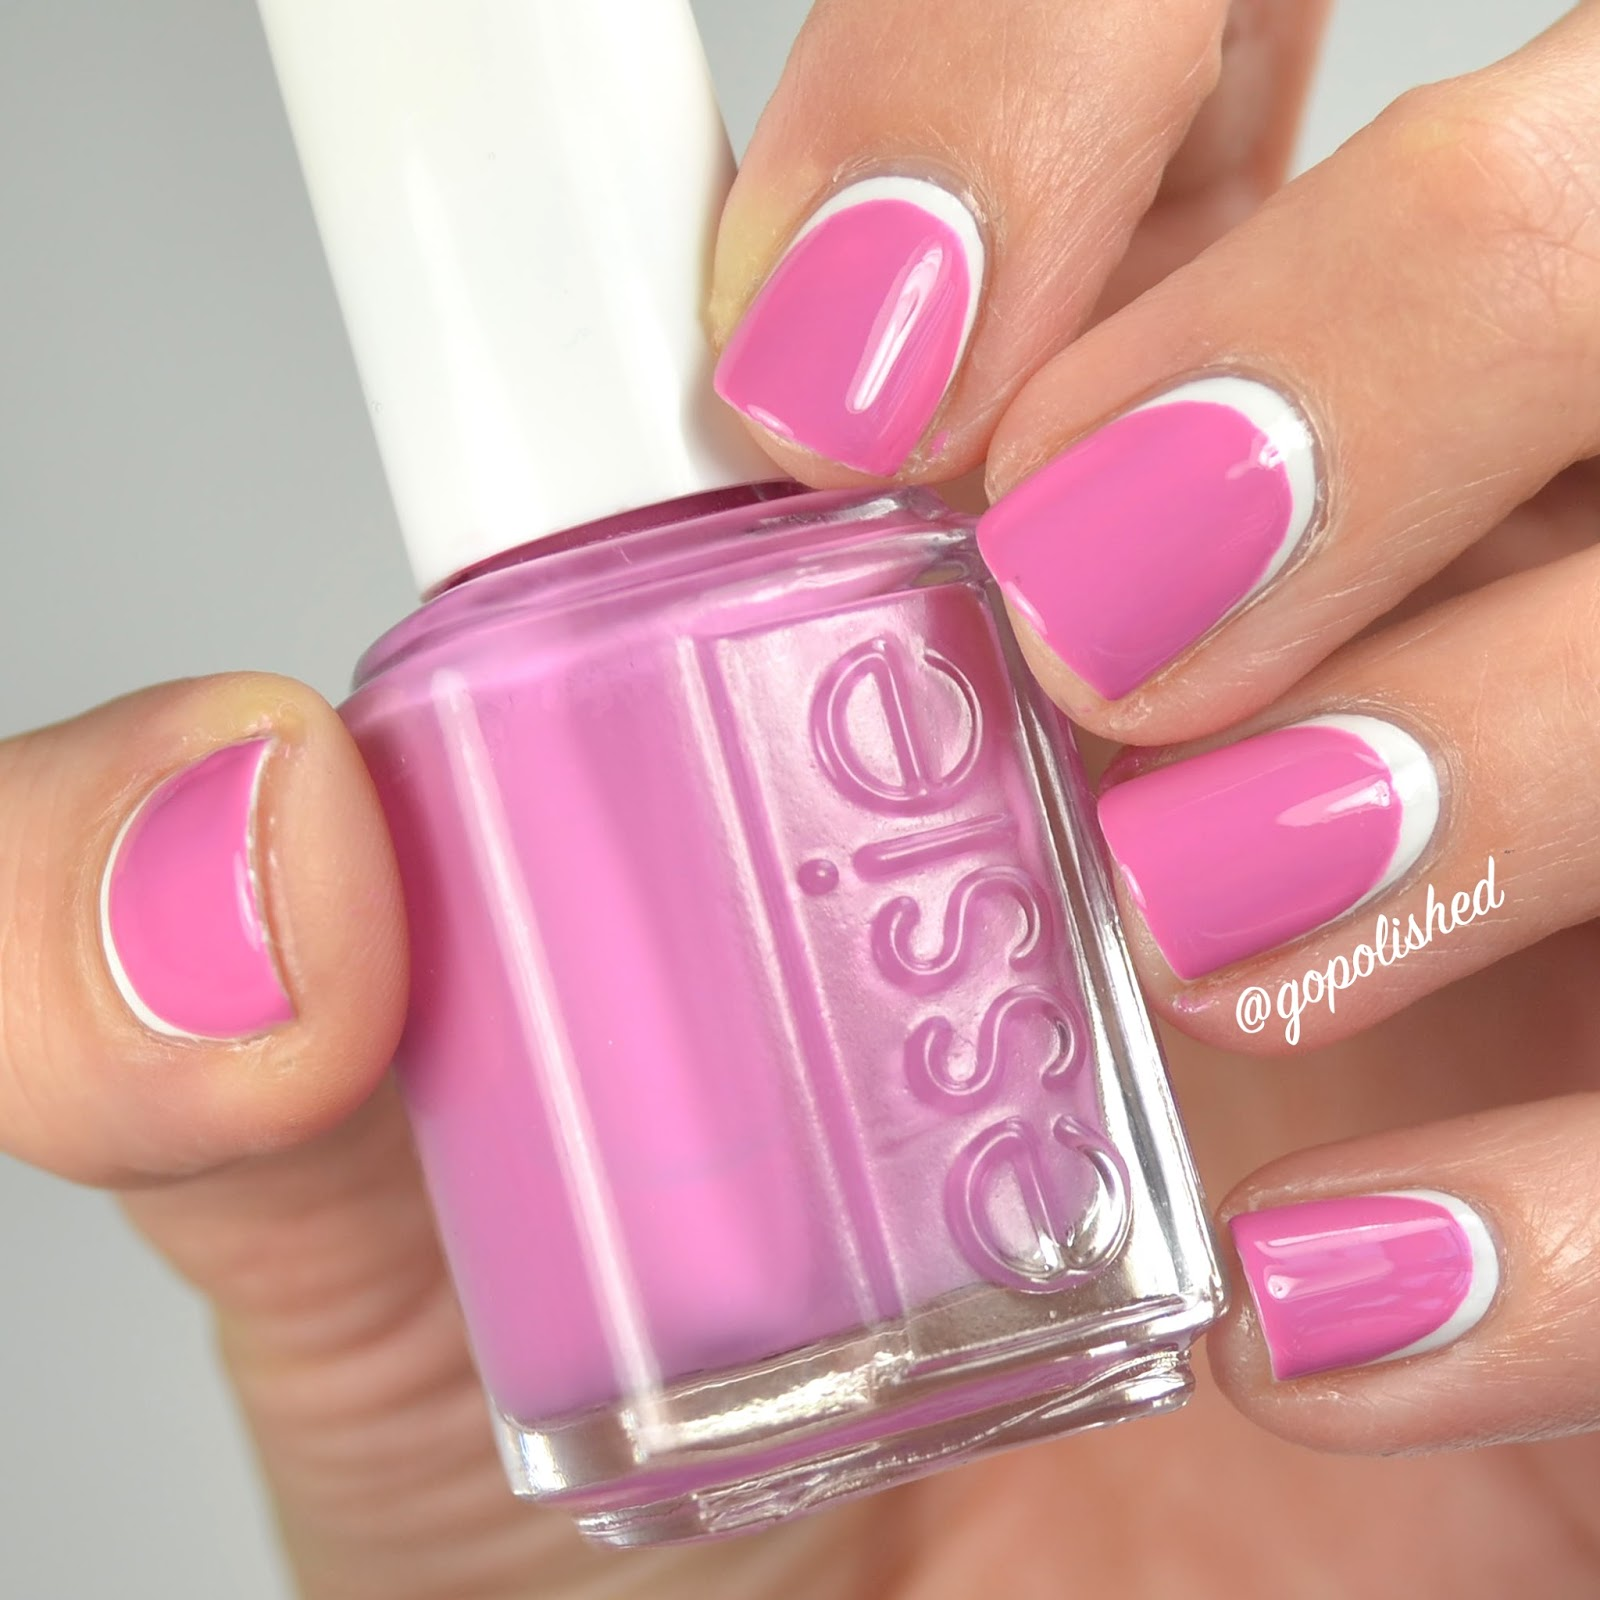 Go Polished: Reverse French (pink and white)